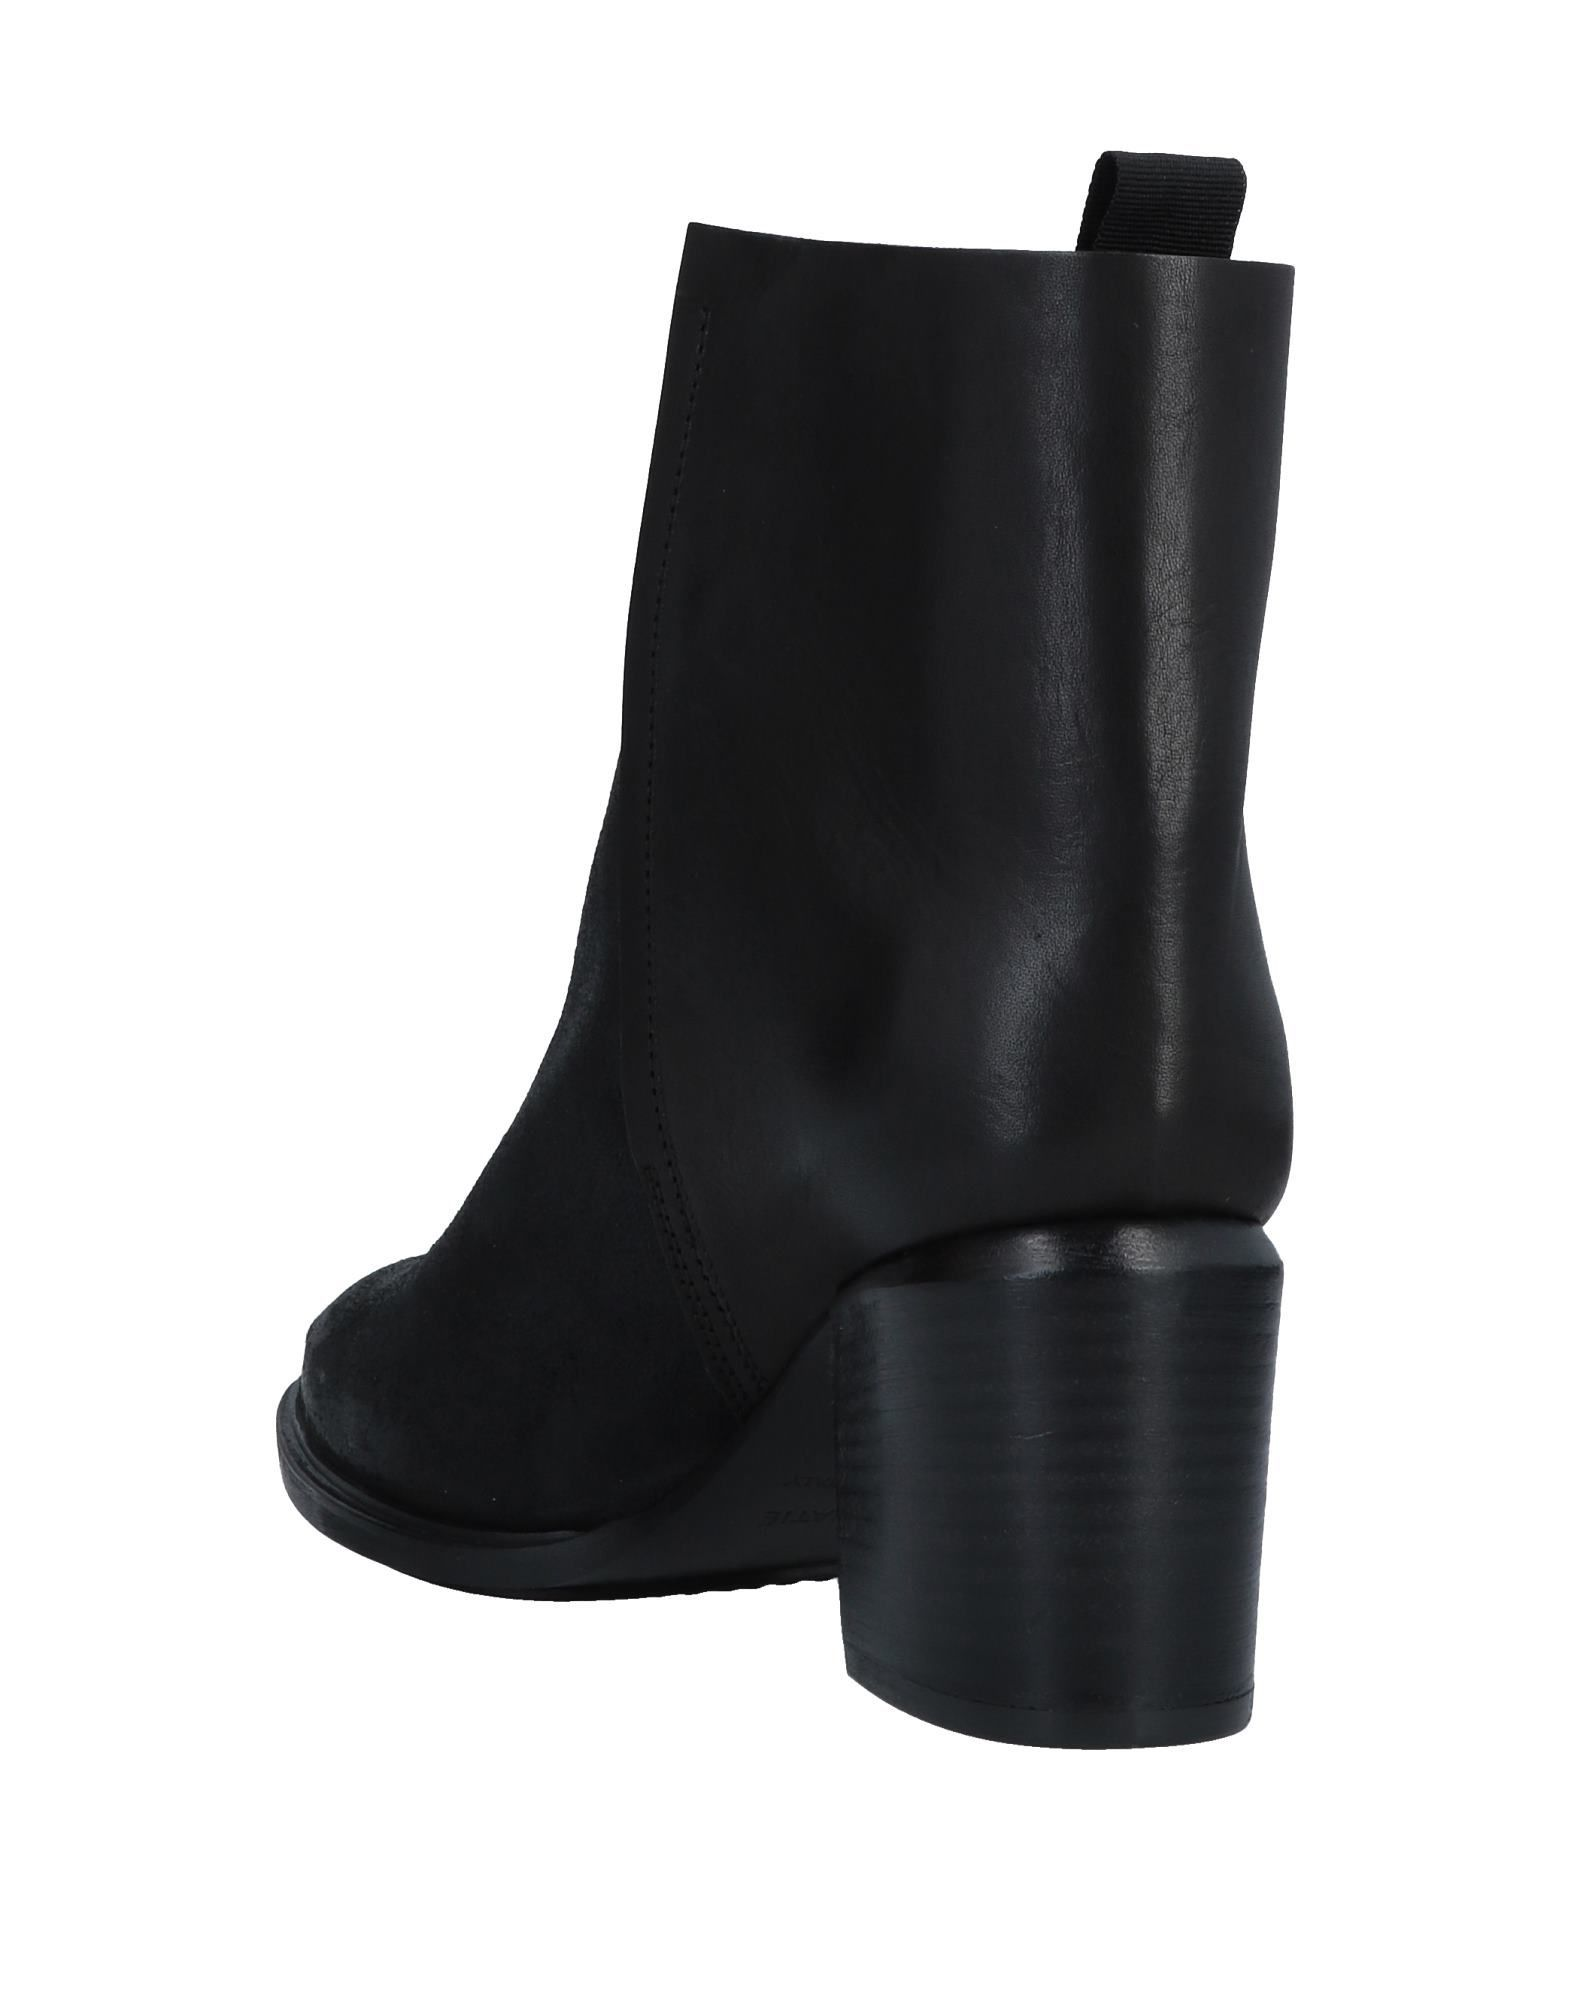 Vic Matie Women's Ankle Boots Black Leather